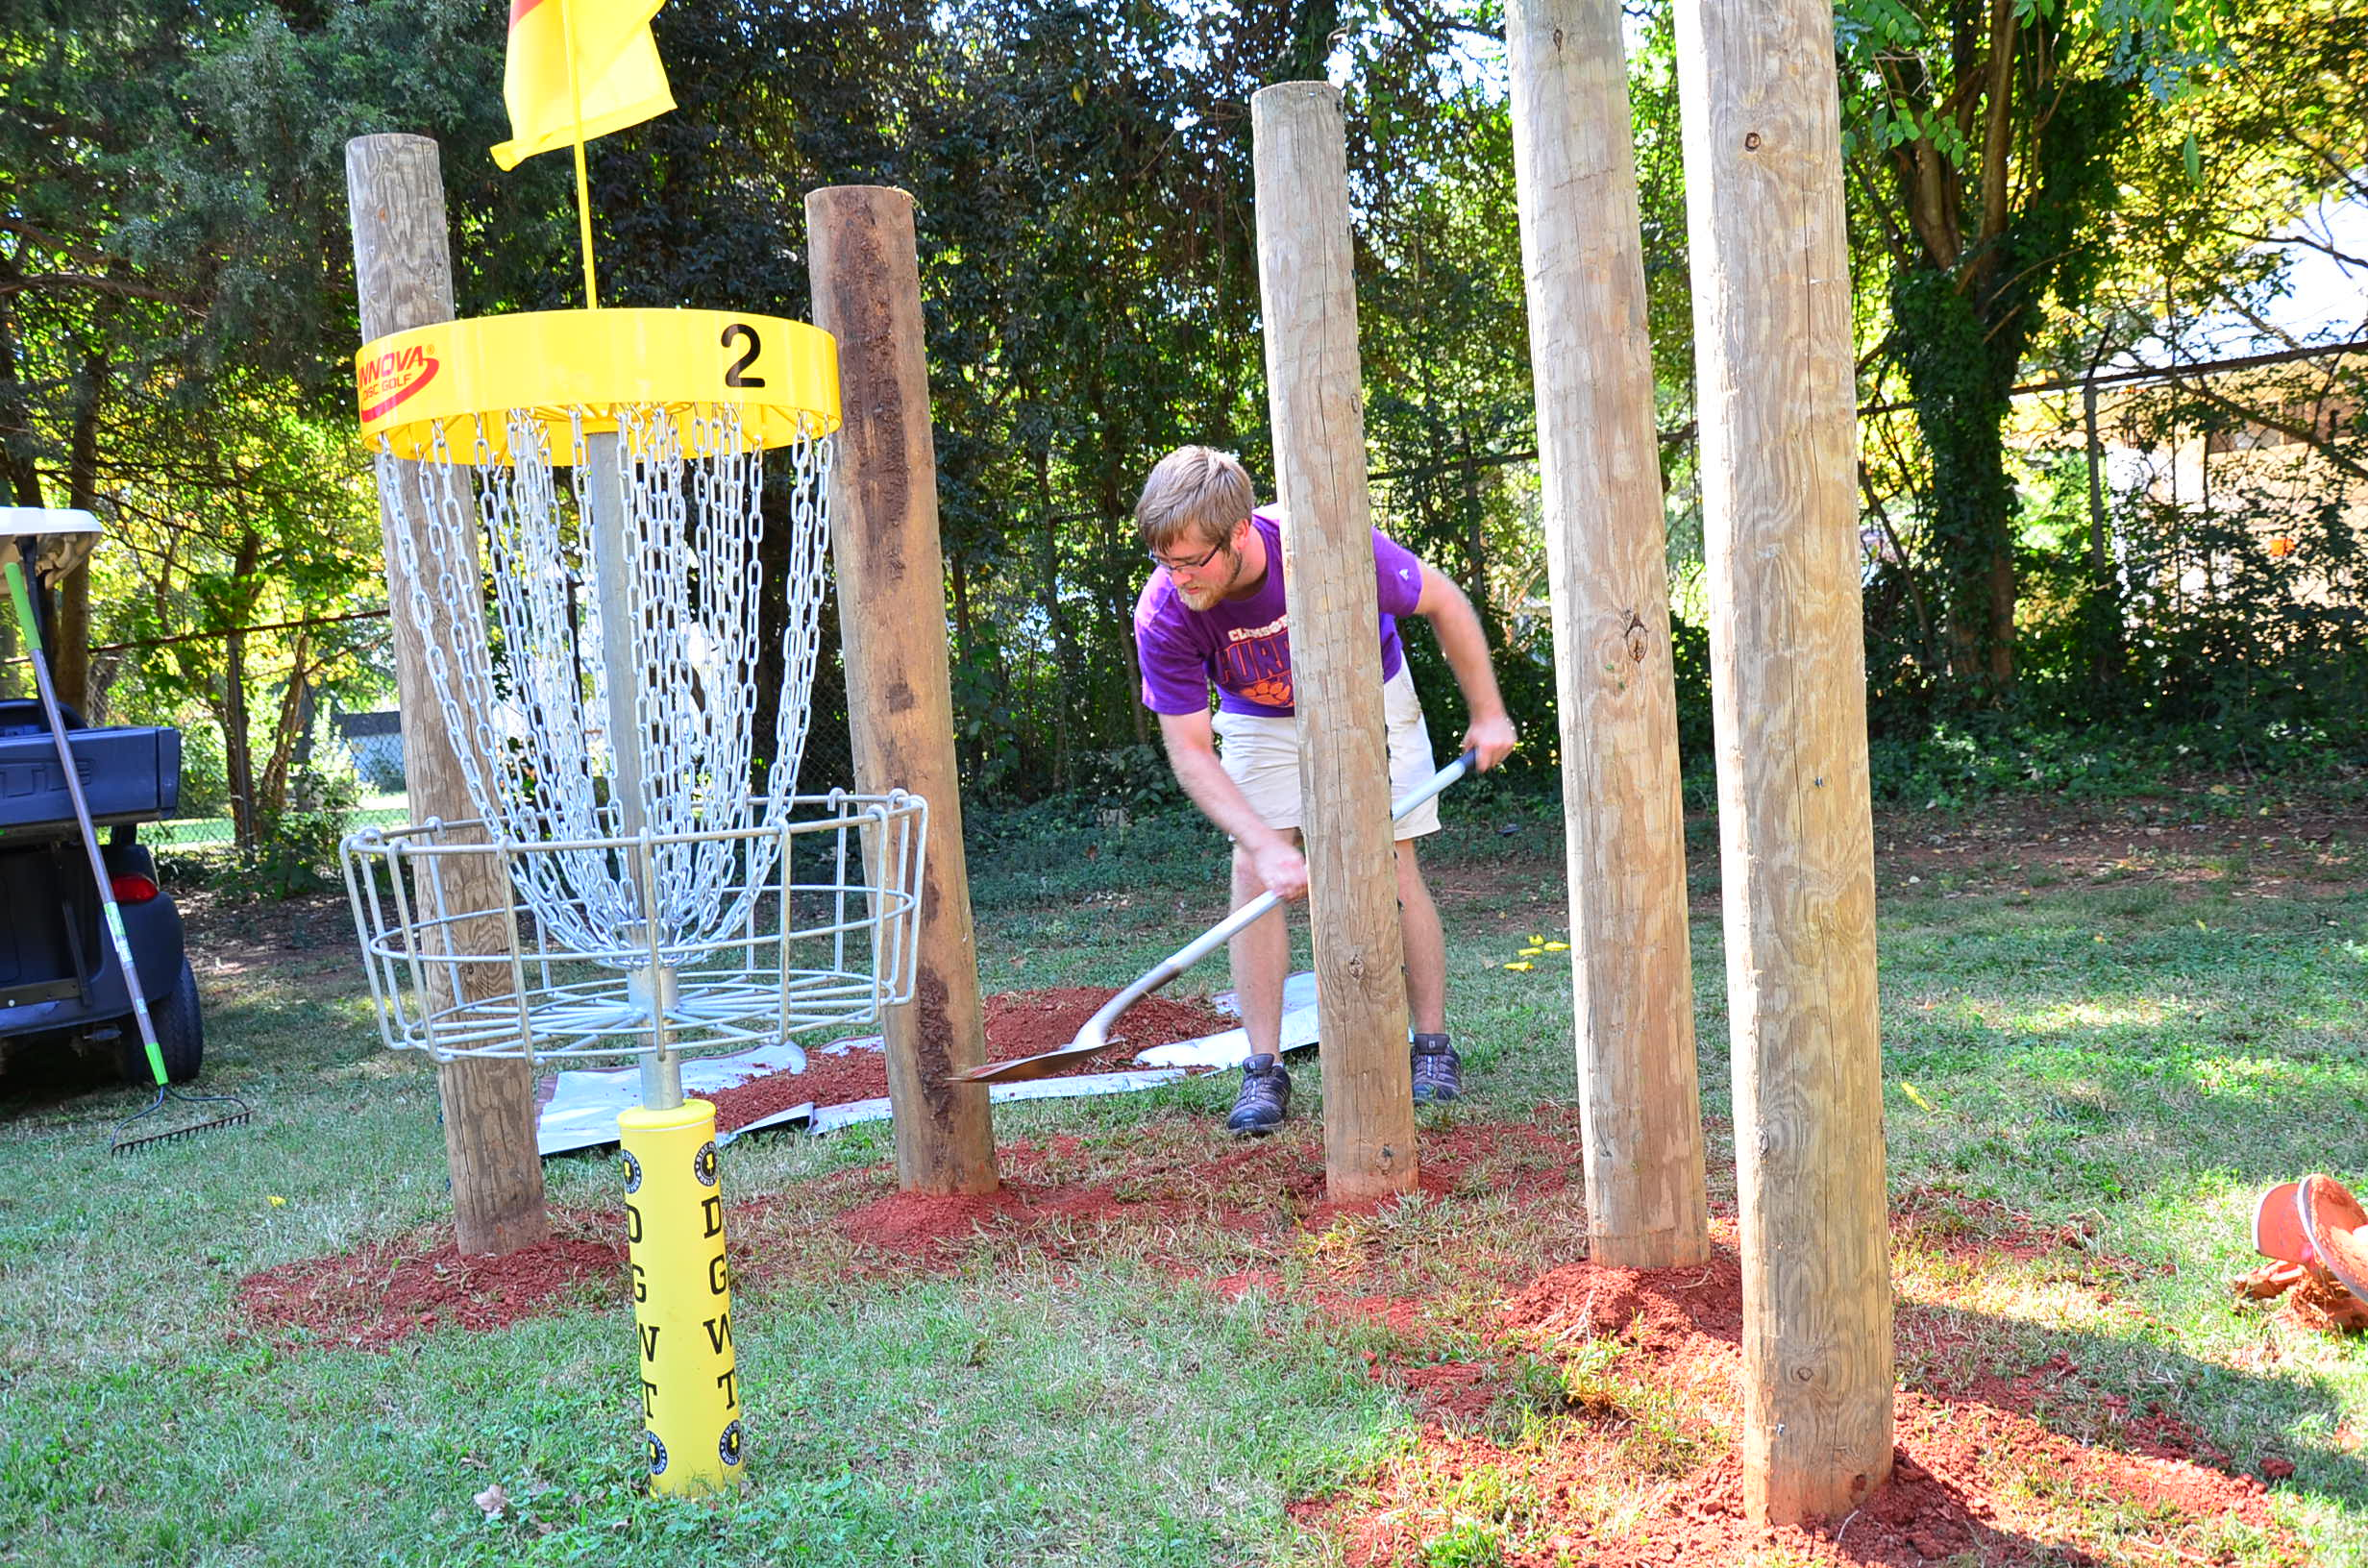 USDGC Staffer smoothes out the dirt surounding the newly planted pillars